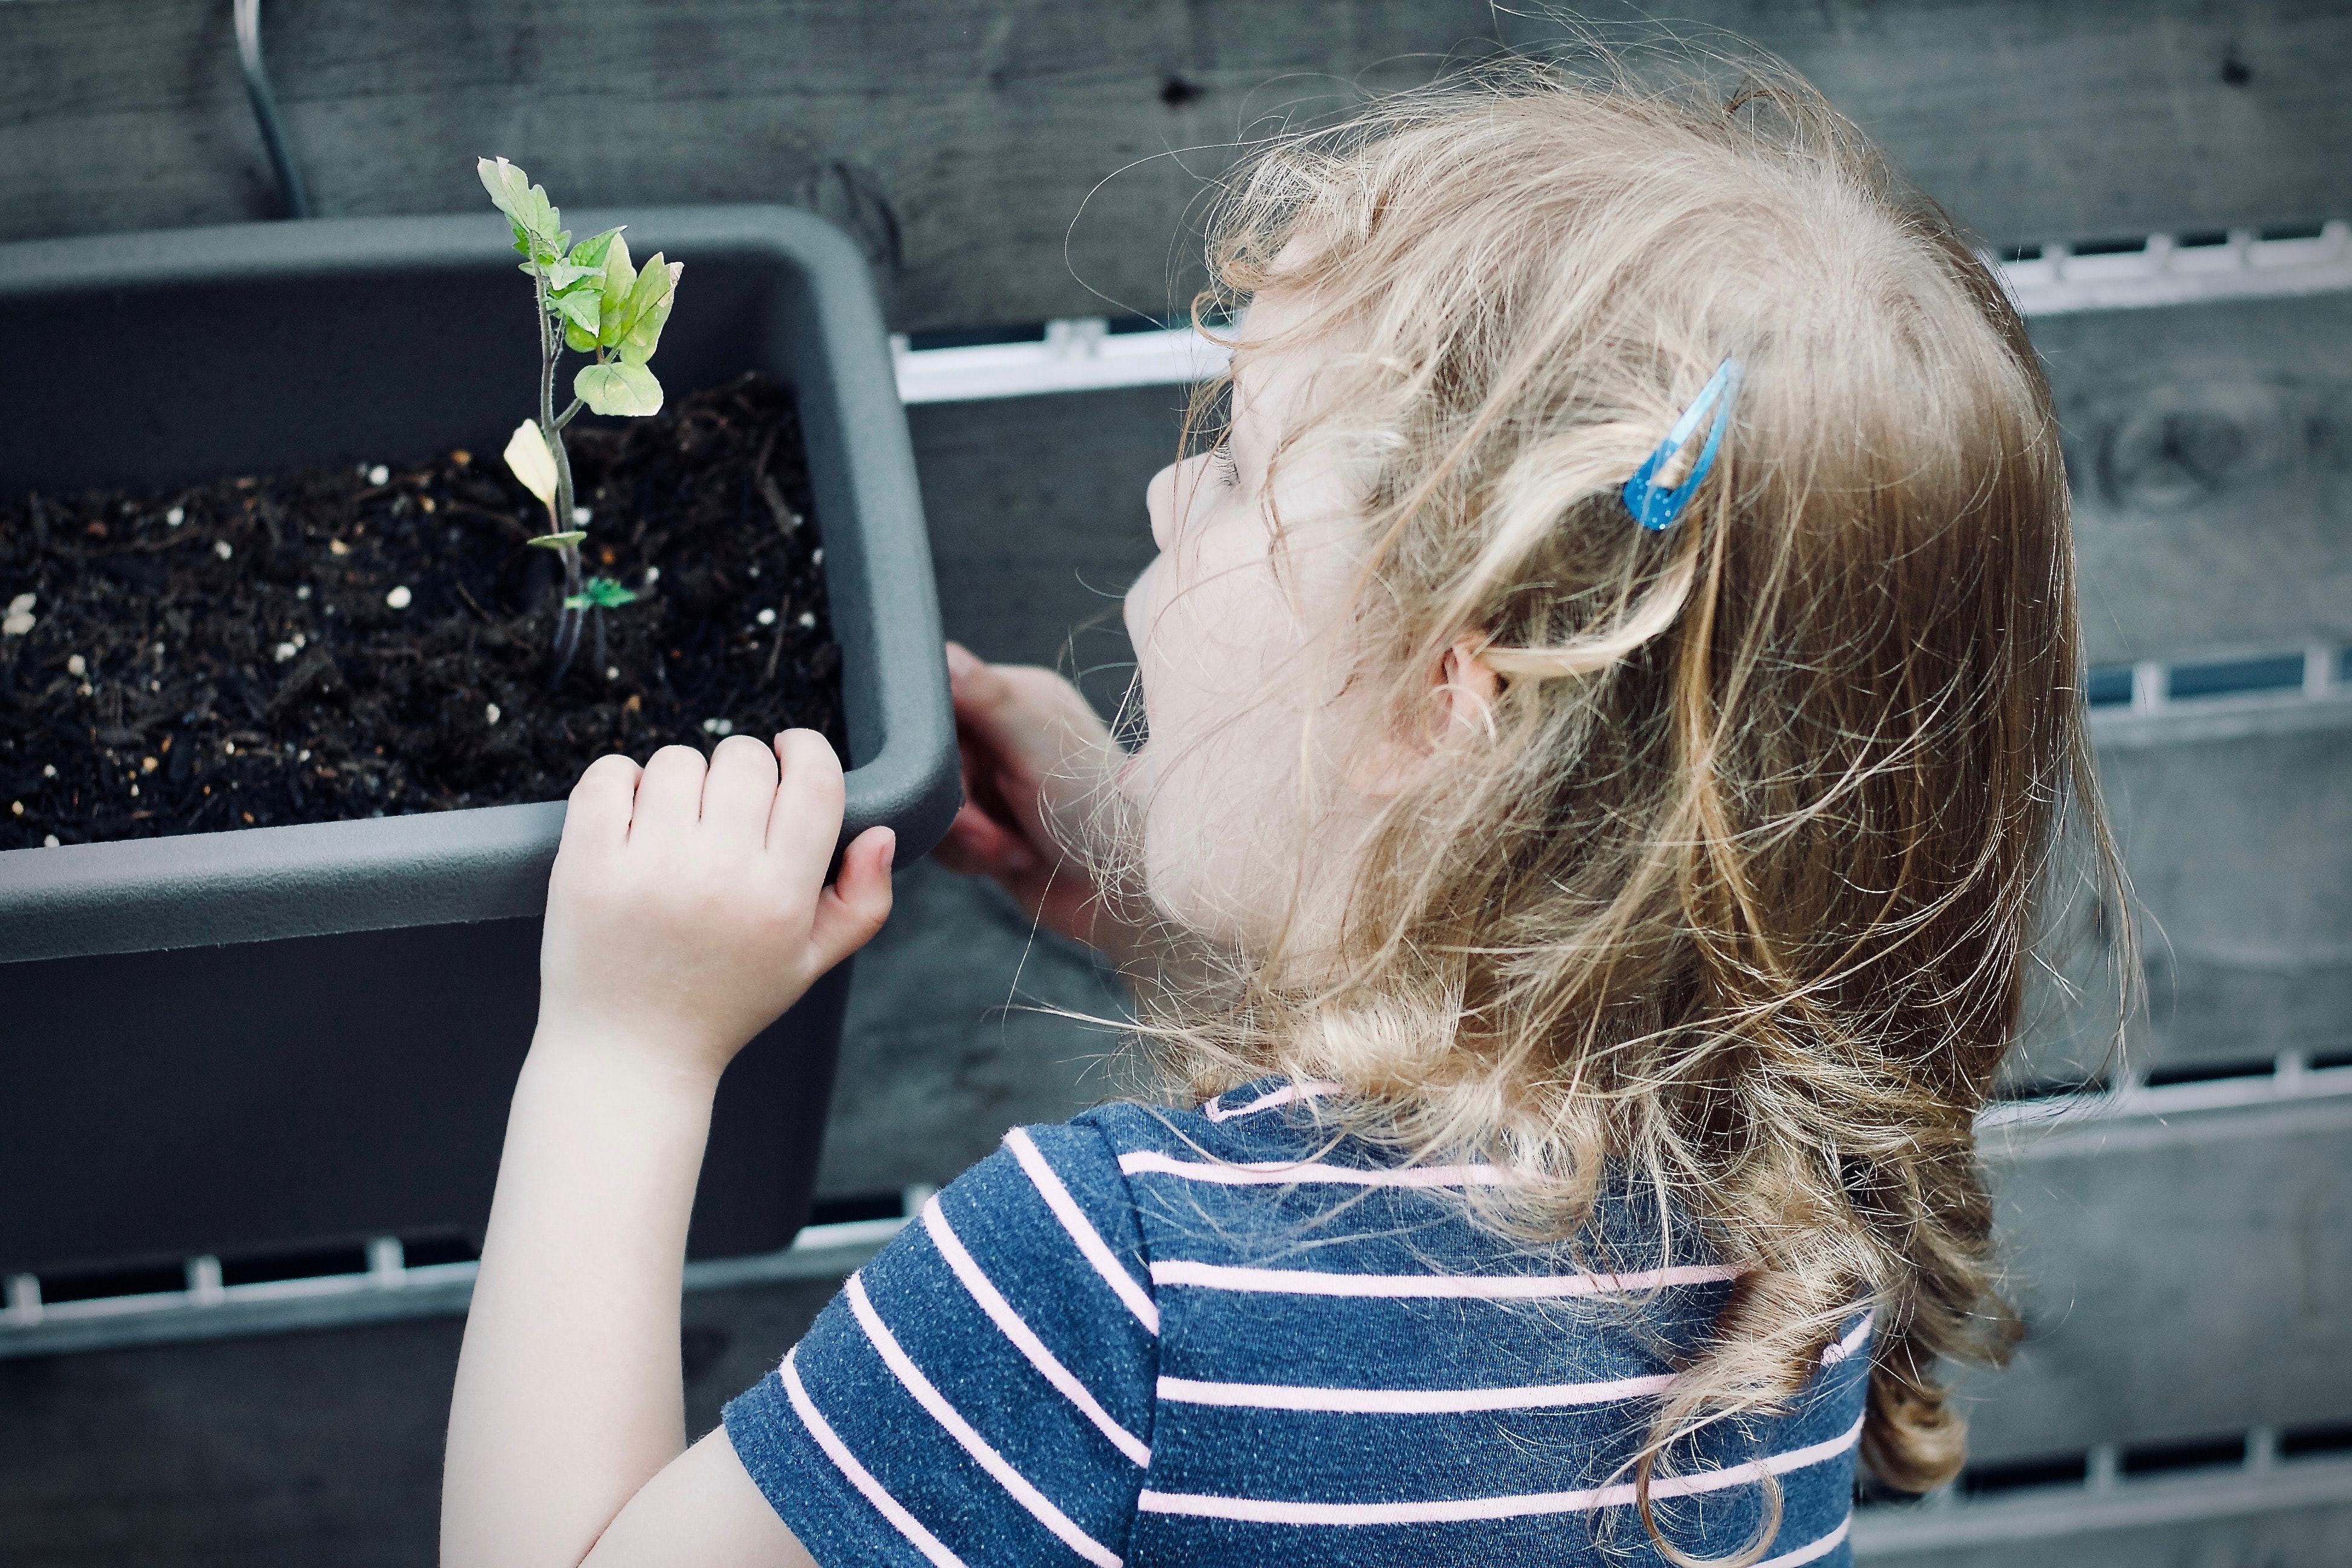 A young girl looks with excitement at a sprouting plant in a pot aside a fence